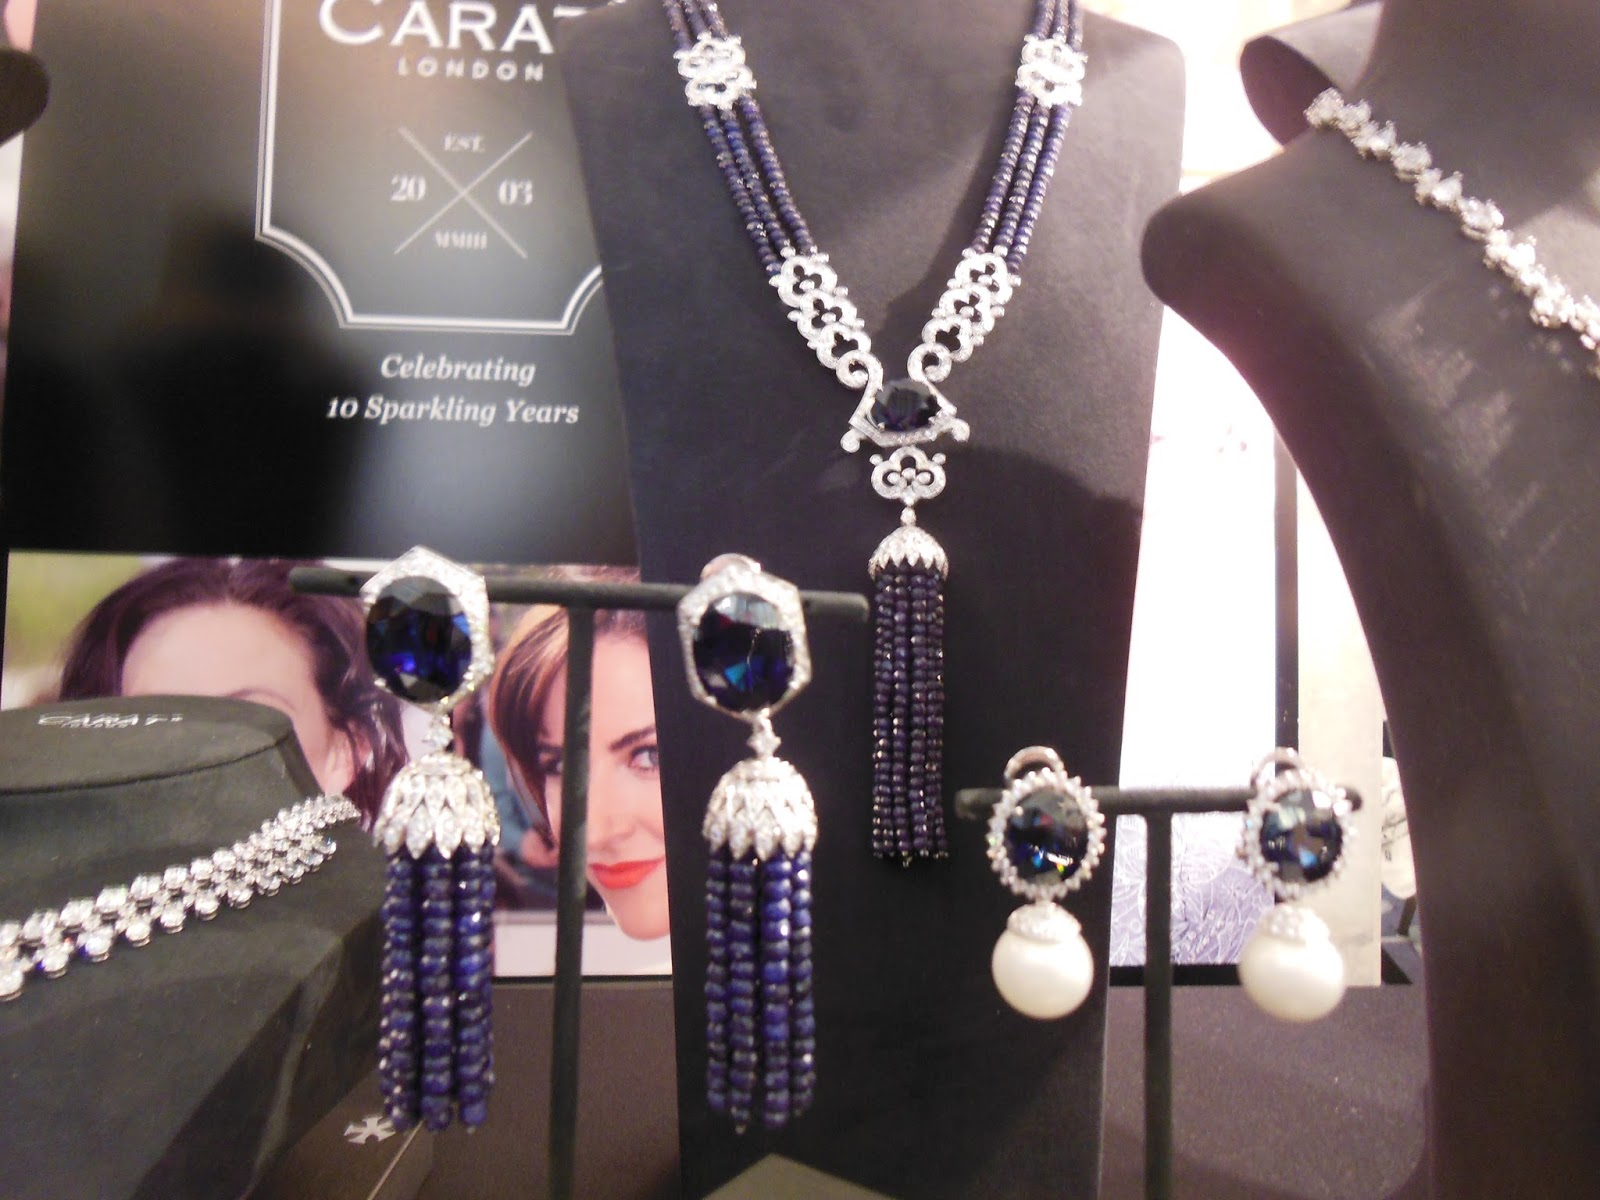 BAFTA jewellery from Carat London